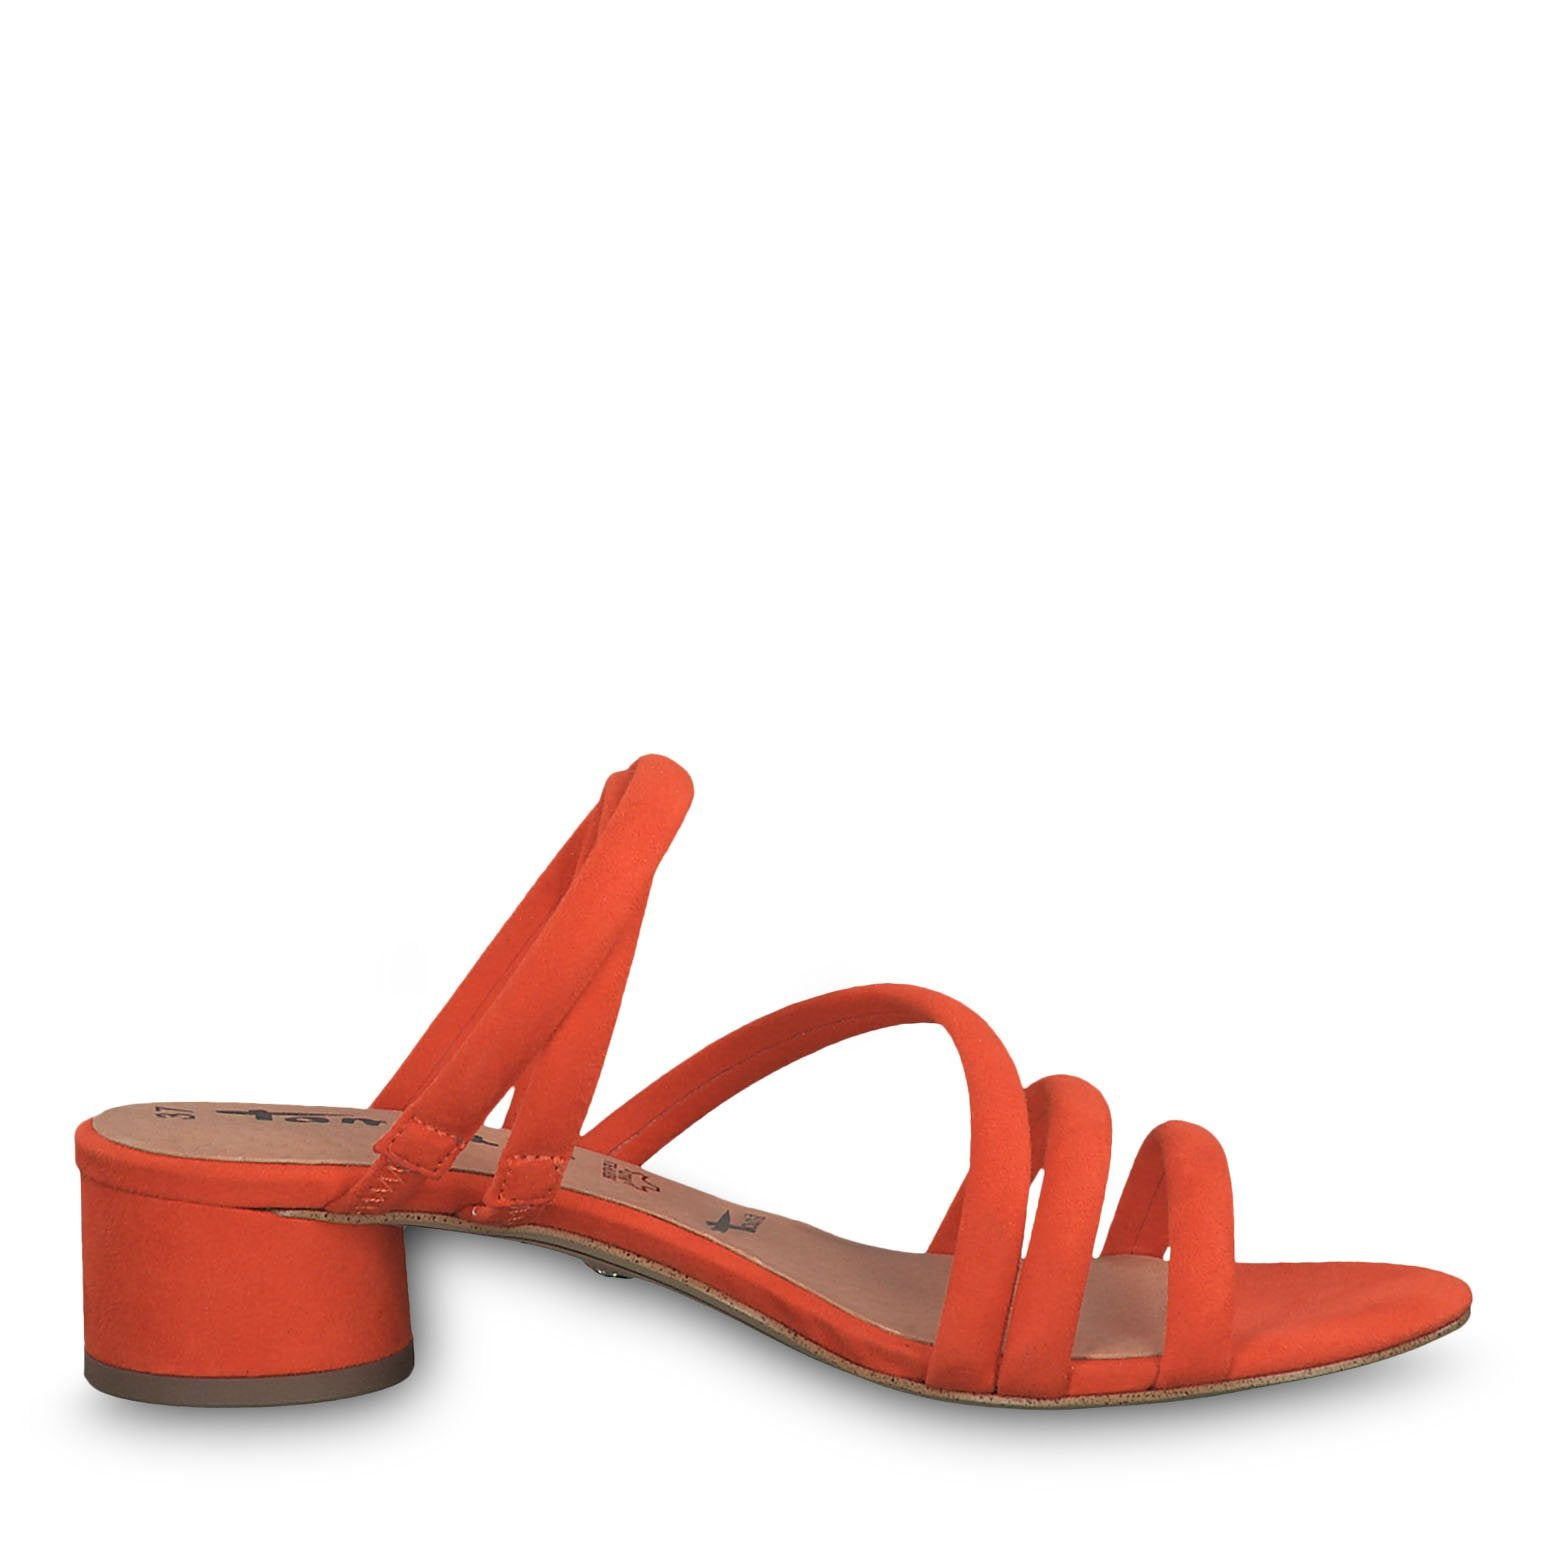 Tamaris Orange sandal shop online på shoeandstyle.dk